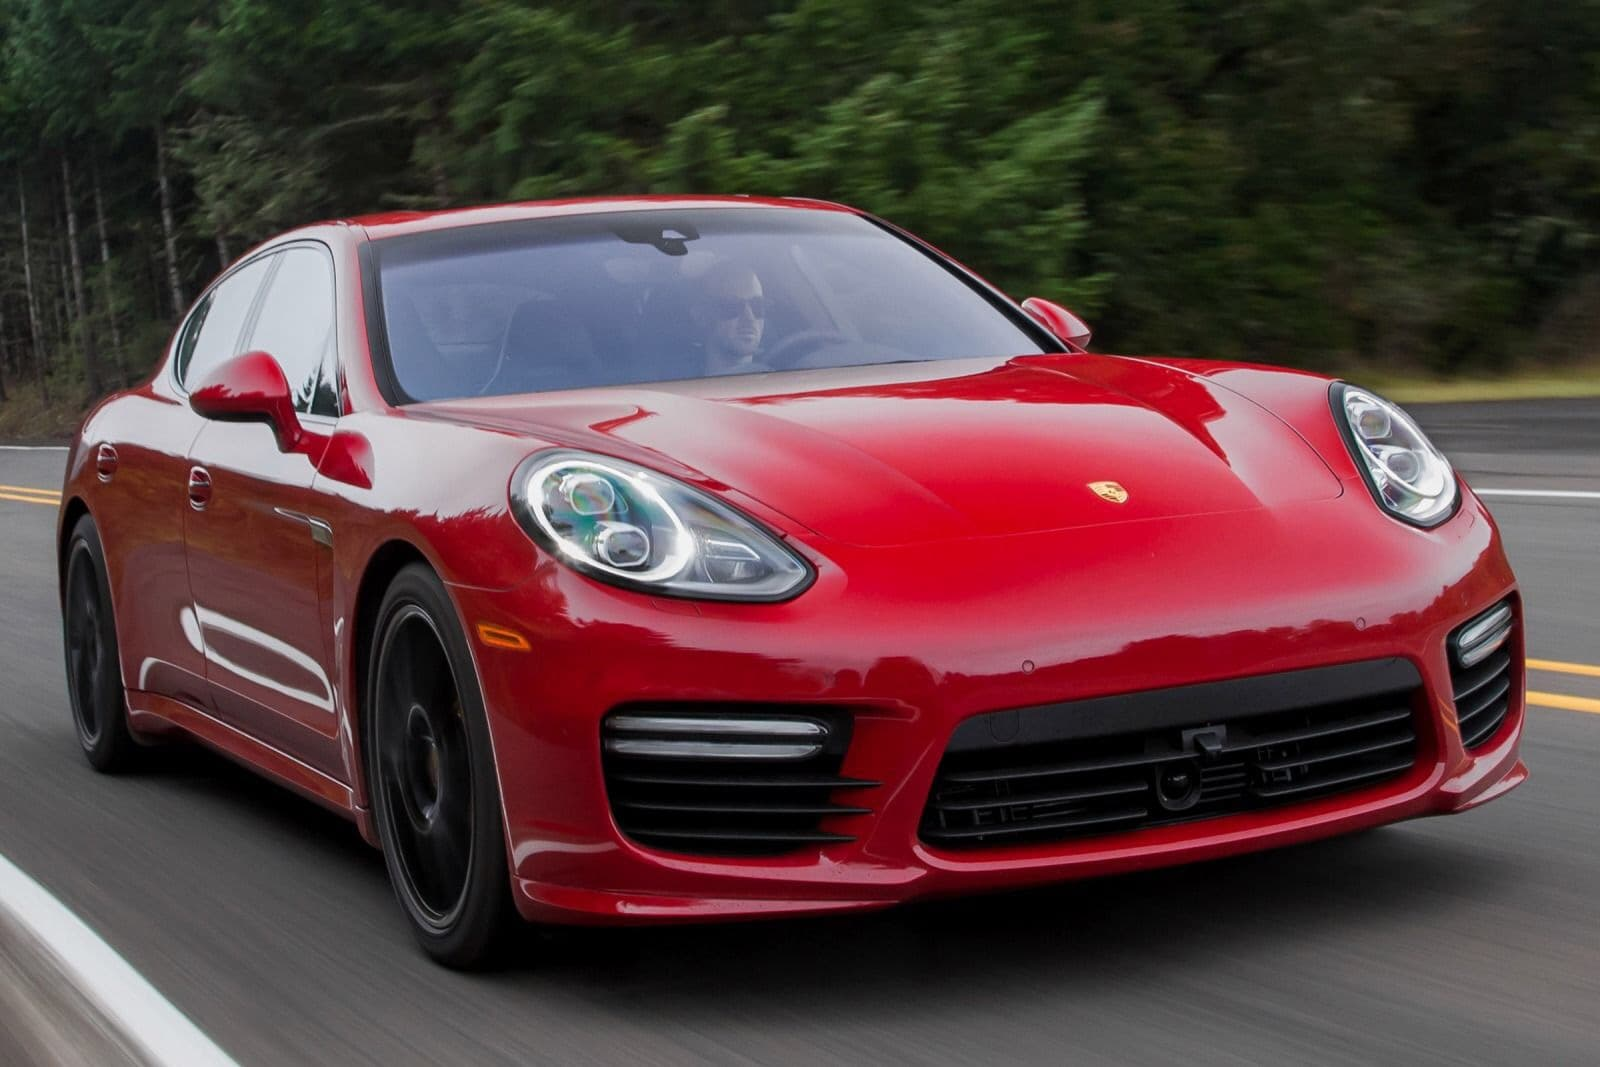 porsche panamera turbo s executive with Porsche Panamera Turbo S 2017 on Panamera additionally 2017 Porsche Panamera Turbo First Drive Review besides 2018 Porsche Panamera Wagon Spy furthermore Porsche Panamera Flagship Costs 200000 As Standard Is It Worth It 115868 likewise 5048.